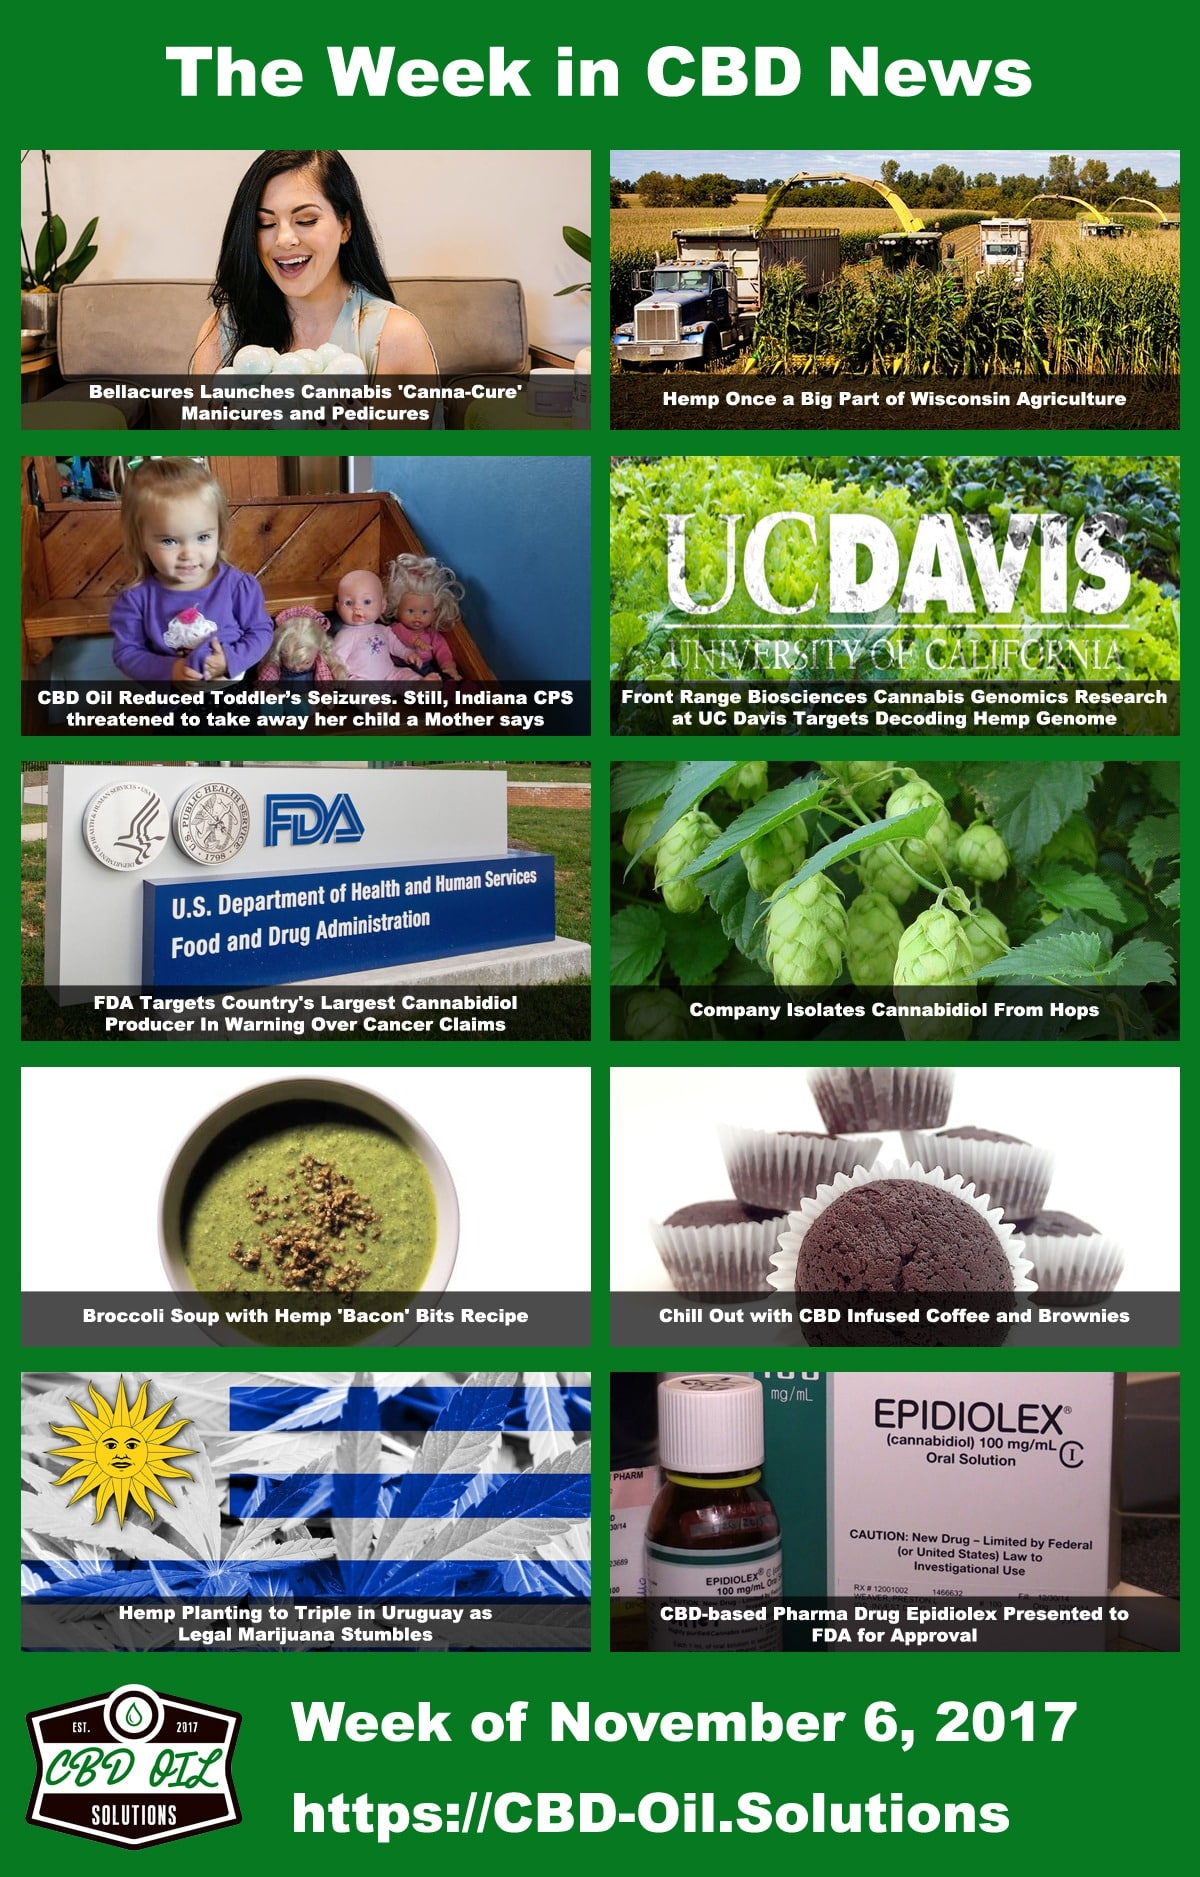 FDA-Warns-CBD-Companies,-Cannabis-Manicures,-and-More---The-Week-In-CBD-News